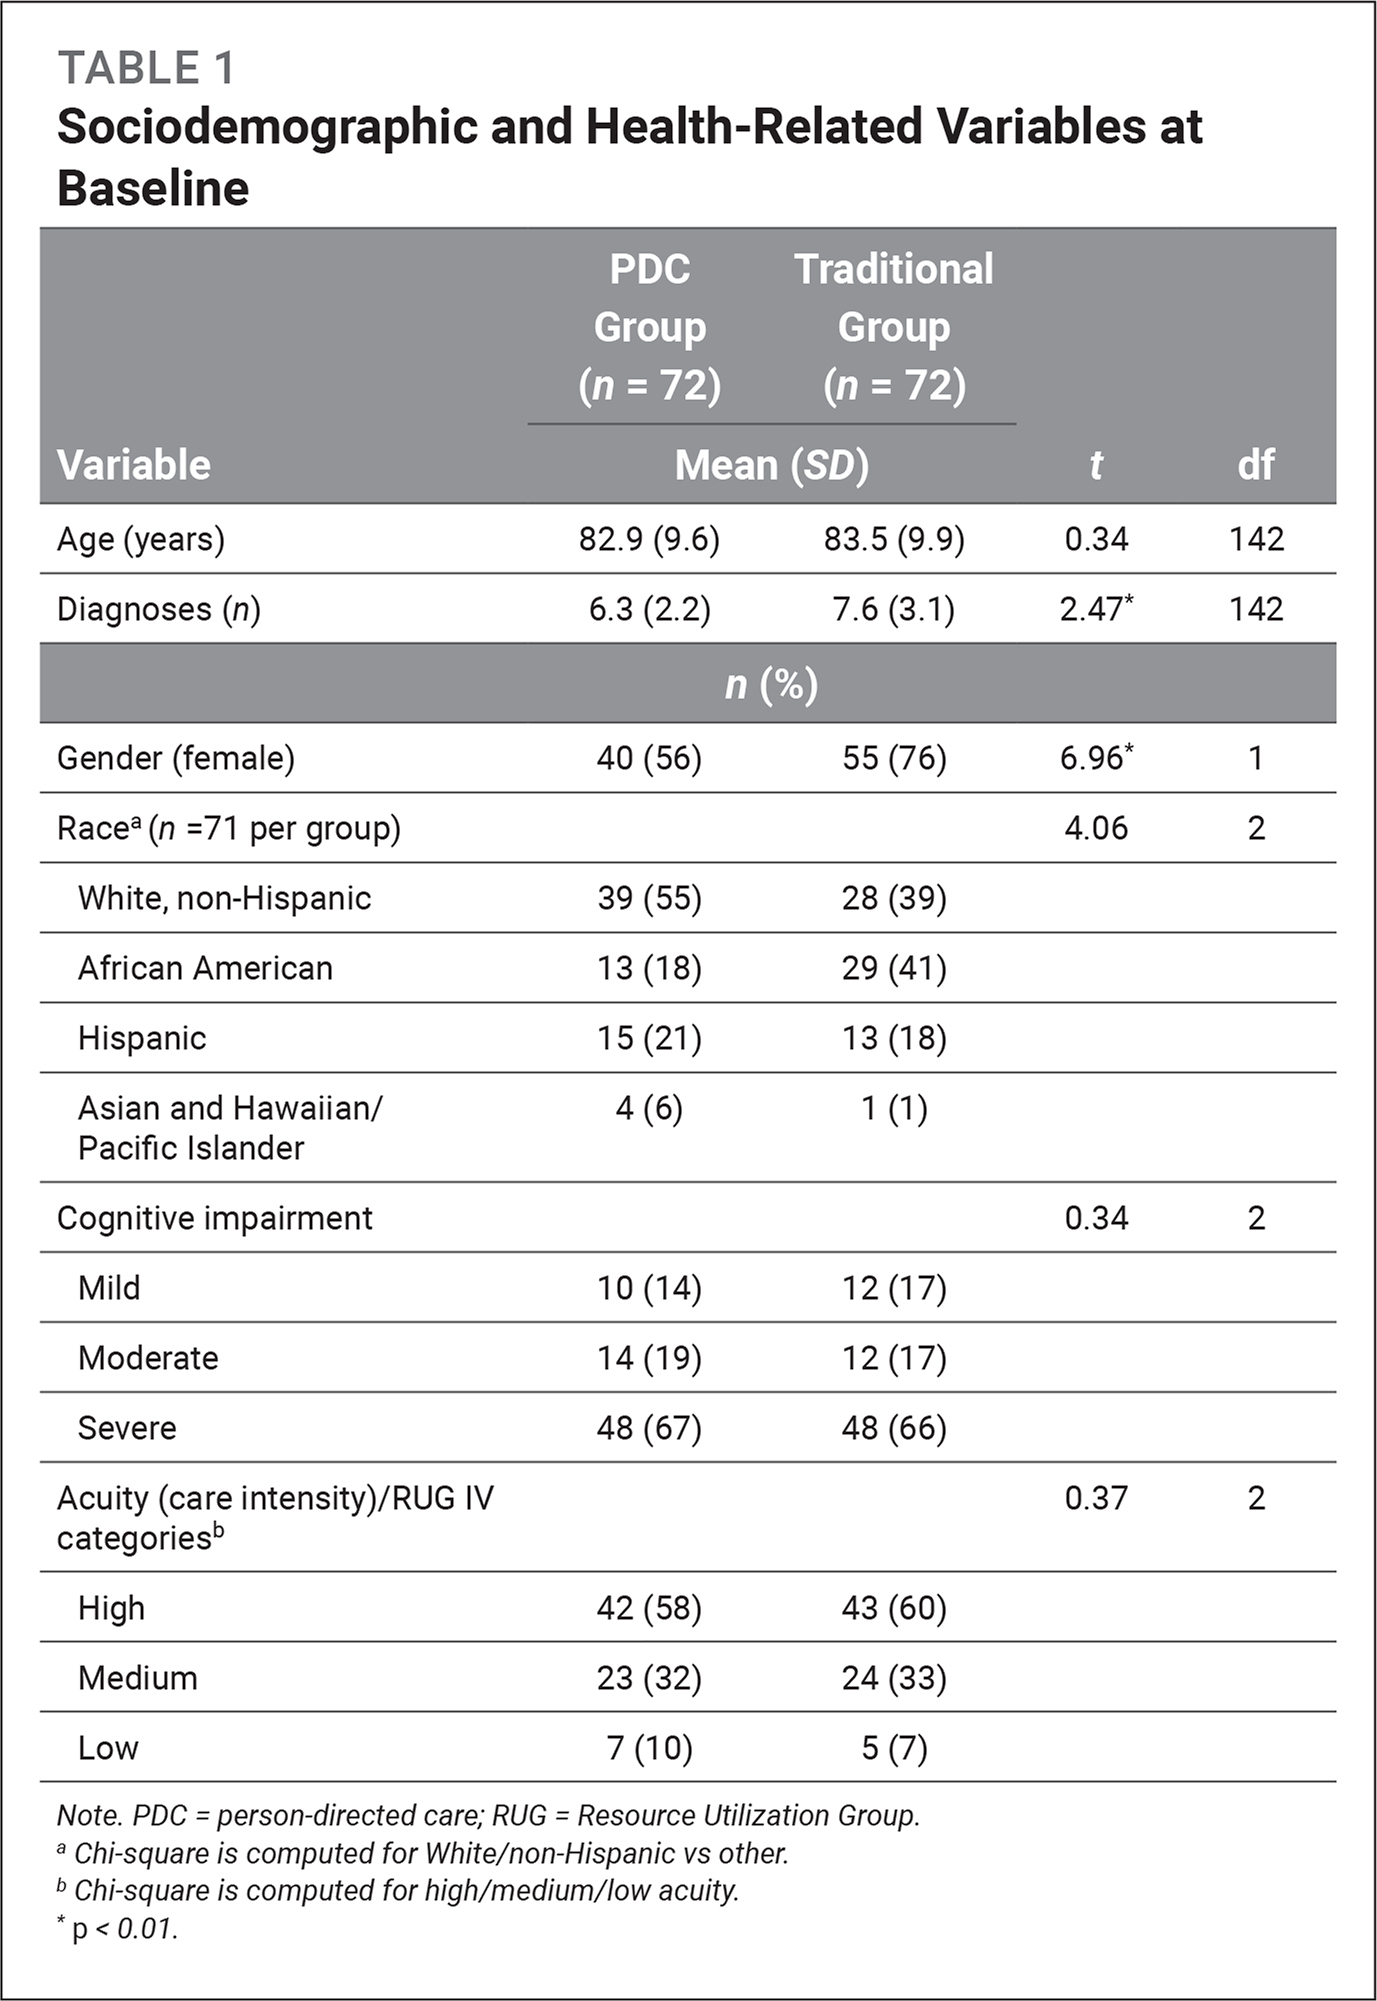 Sociodemographic and Health-Related Variables at Baseline